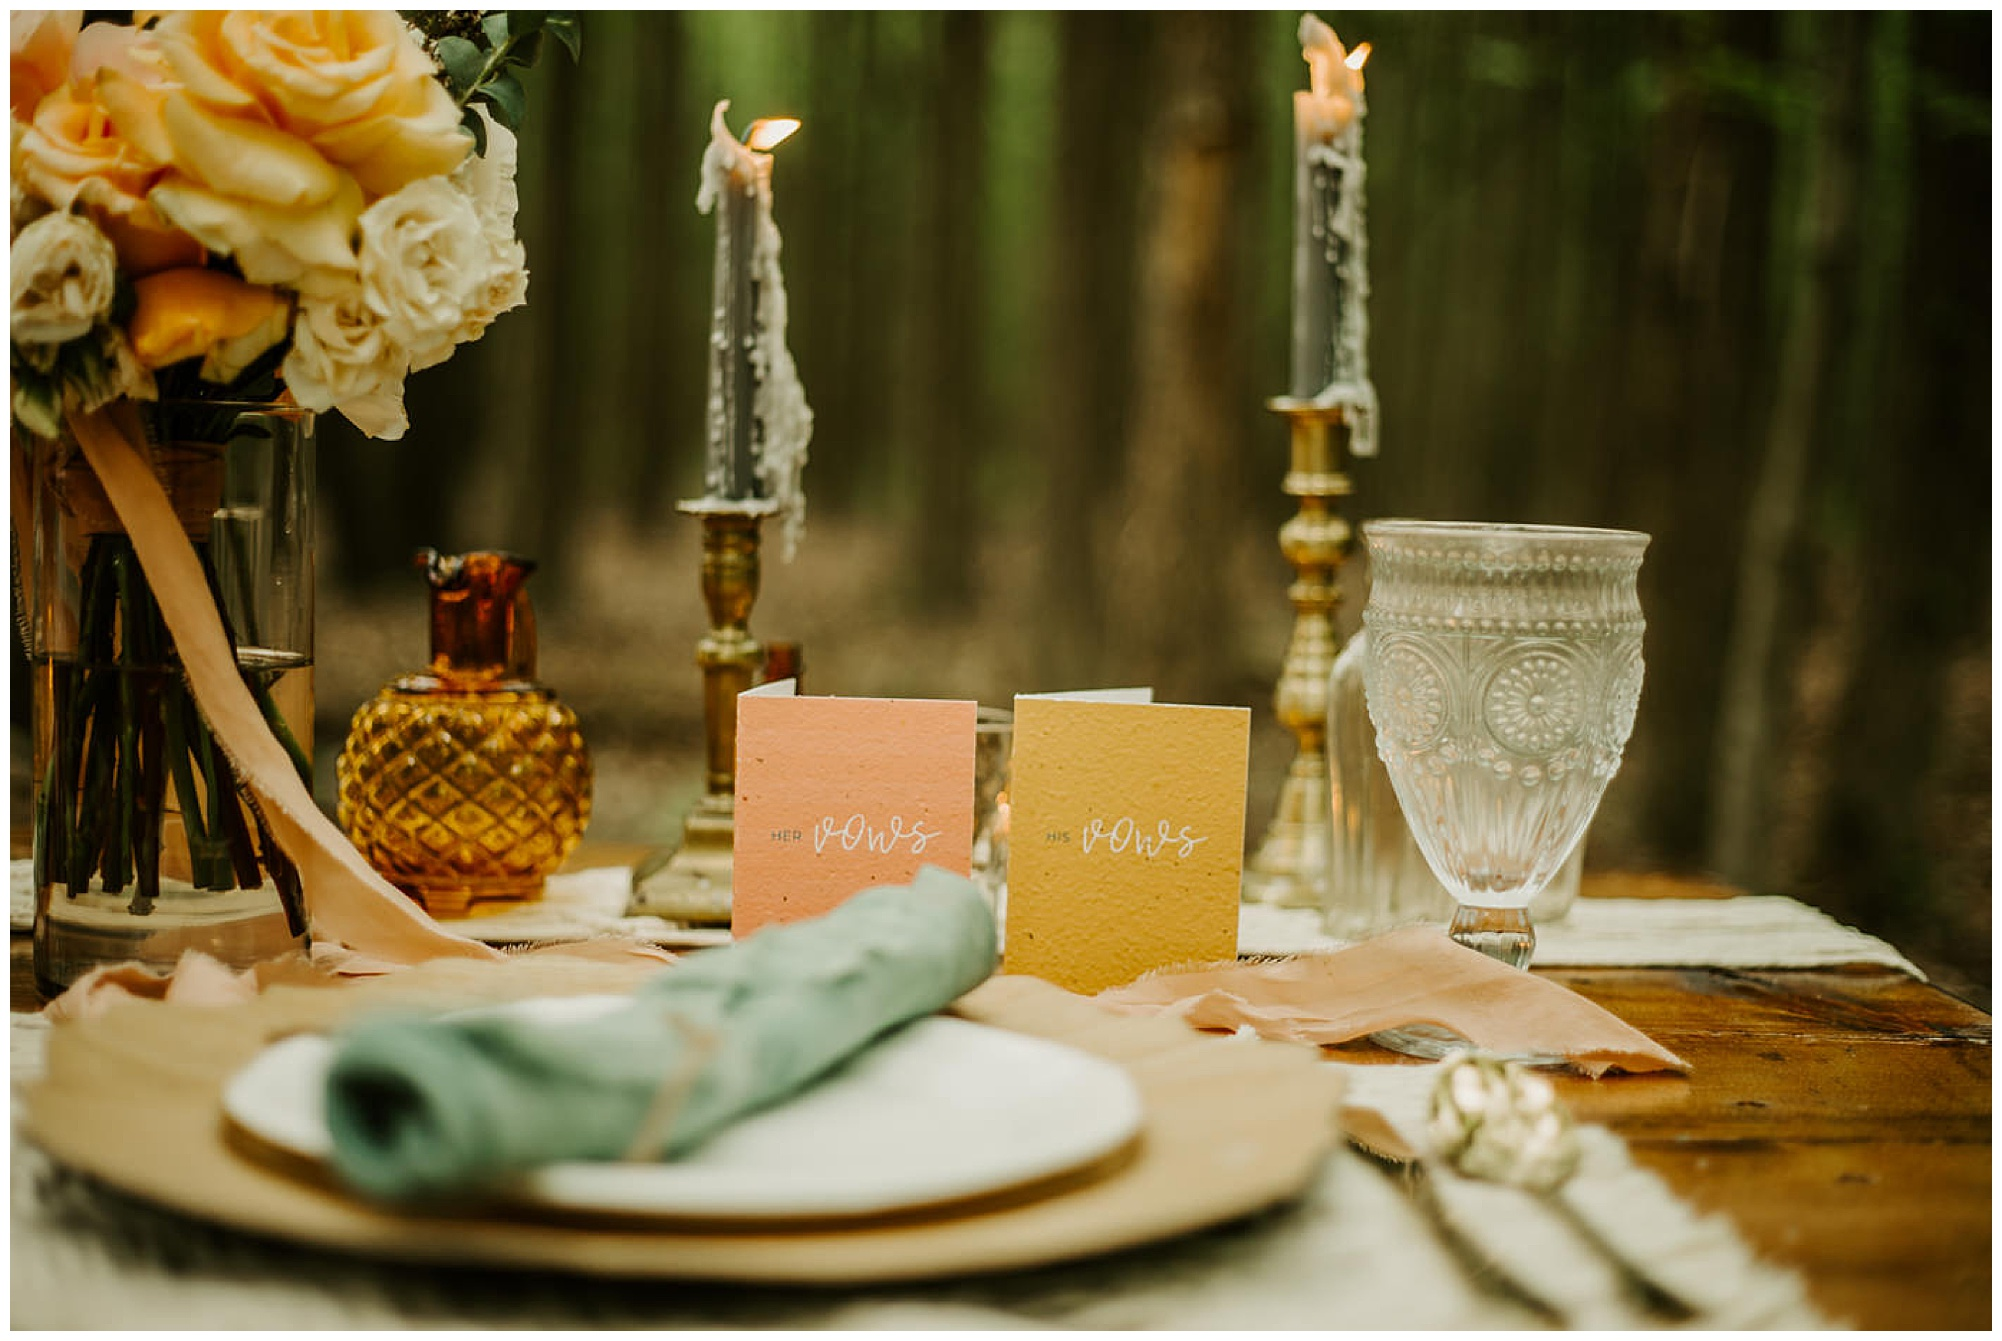 eco friendly vow cards and signage with vintage and eclectic table setting. wedding inspo from maryland eastern shore. outdoors. reception theme.